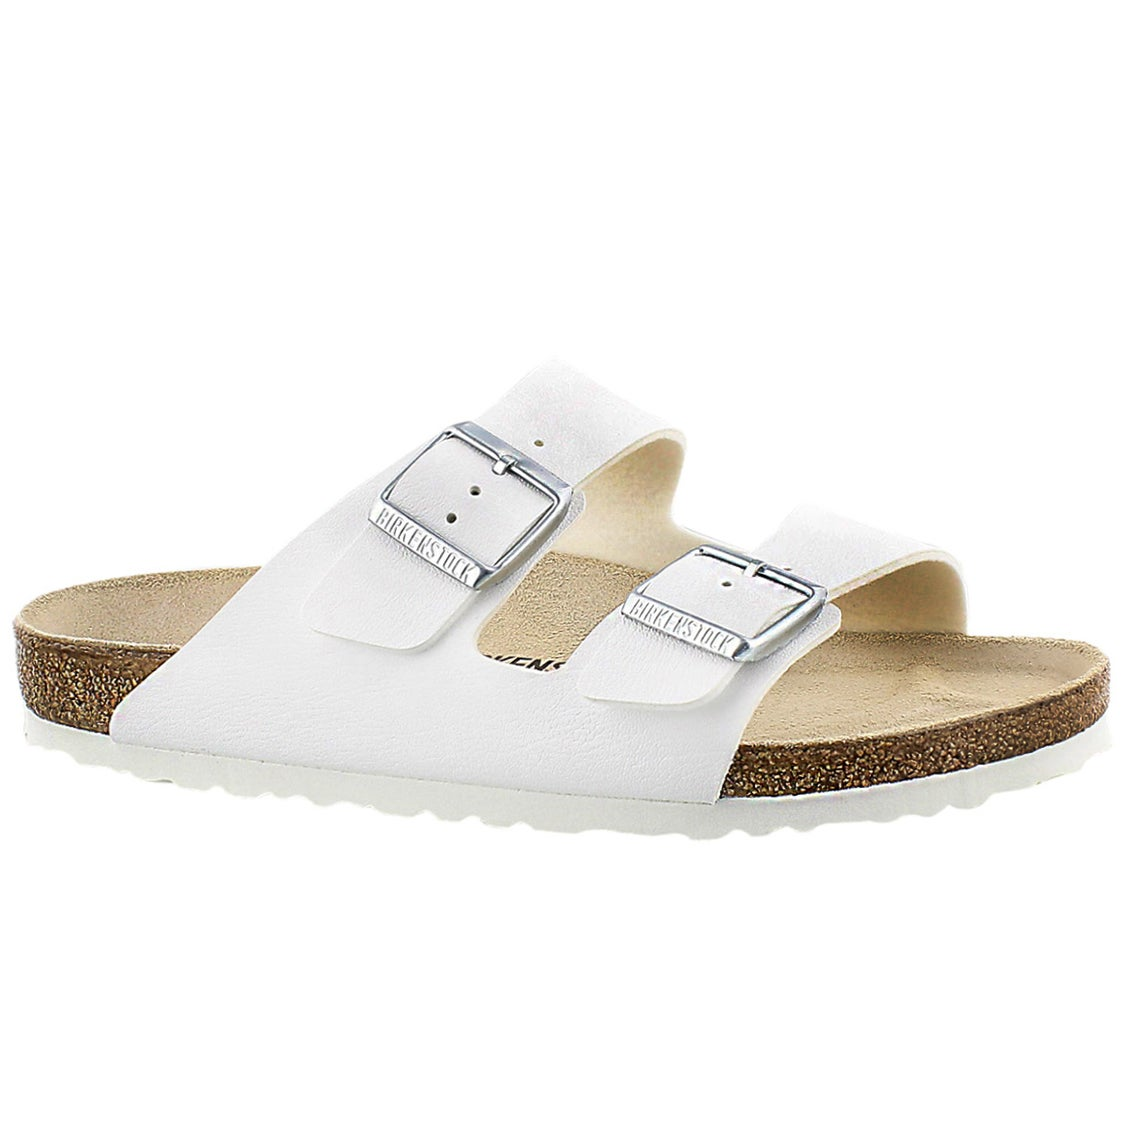 Women's ARIZONA white 2 strap sandals